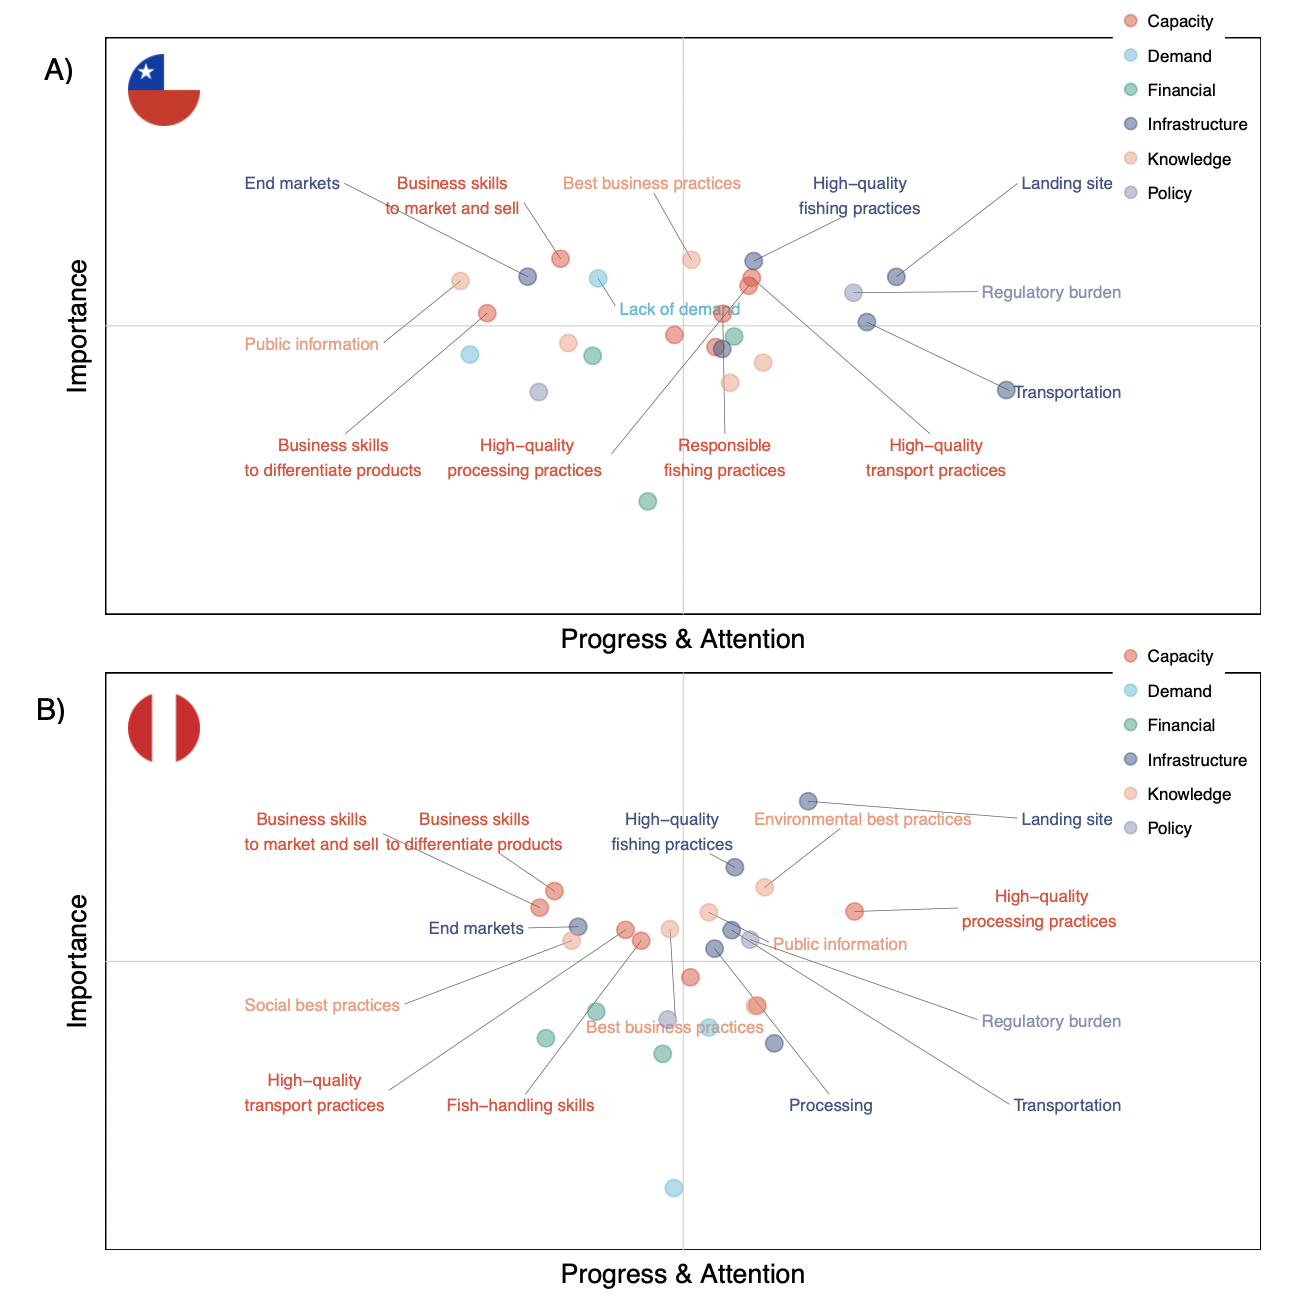 Figure 4. Multivariate plots showing the relative 1) progress and attention and 2) importance of various factors under six domains as viewed by small-scale fisheries experts in A) Chile and B) Peru. Factors in the upper right quadrant can be viewed as more important and having received more progress and attention. Factors in the upper left quadrant are more important and have received less progress and attention. Factors above the importance mid-point are labeled. Many capacity and knowledge factors fall into the upper left quadrant for both countries.